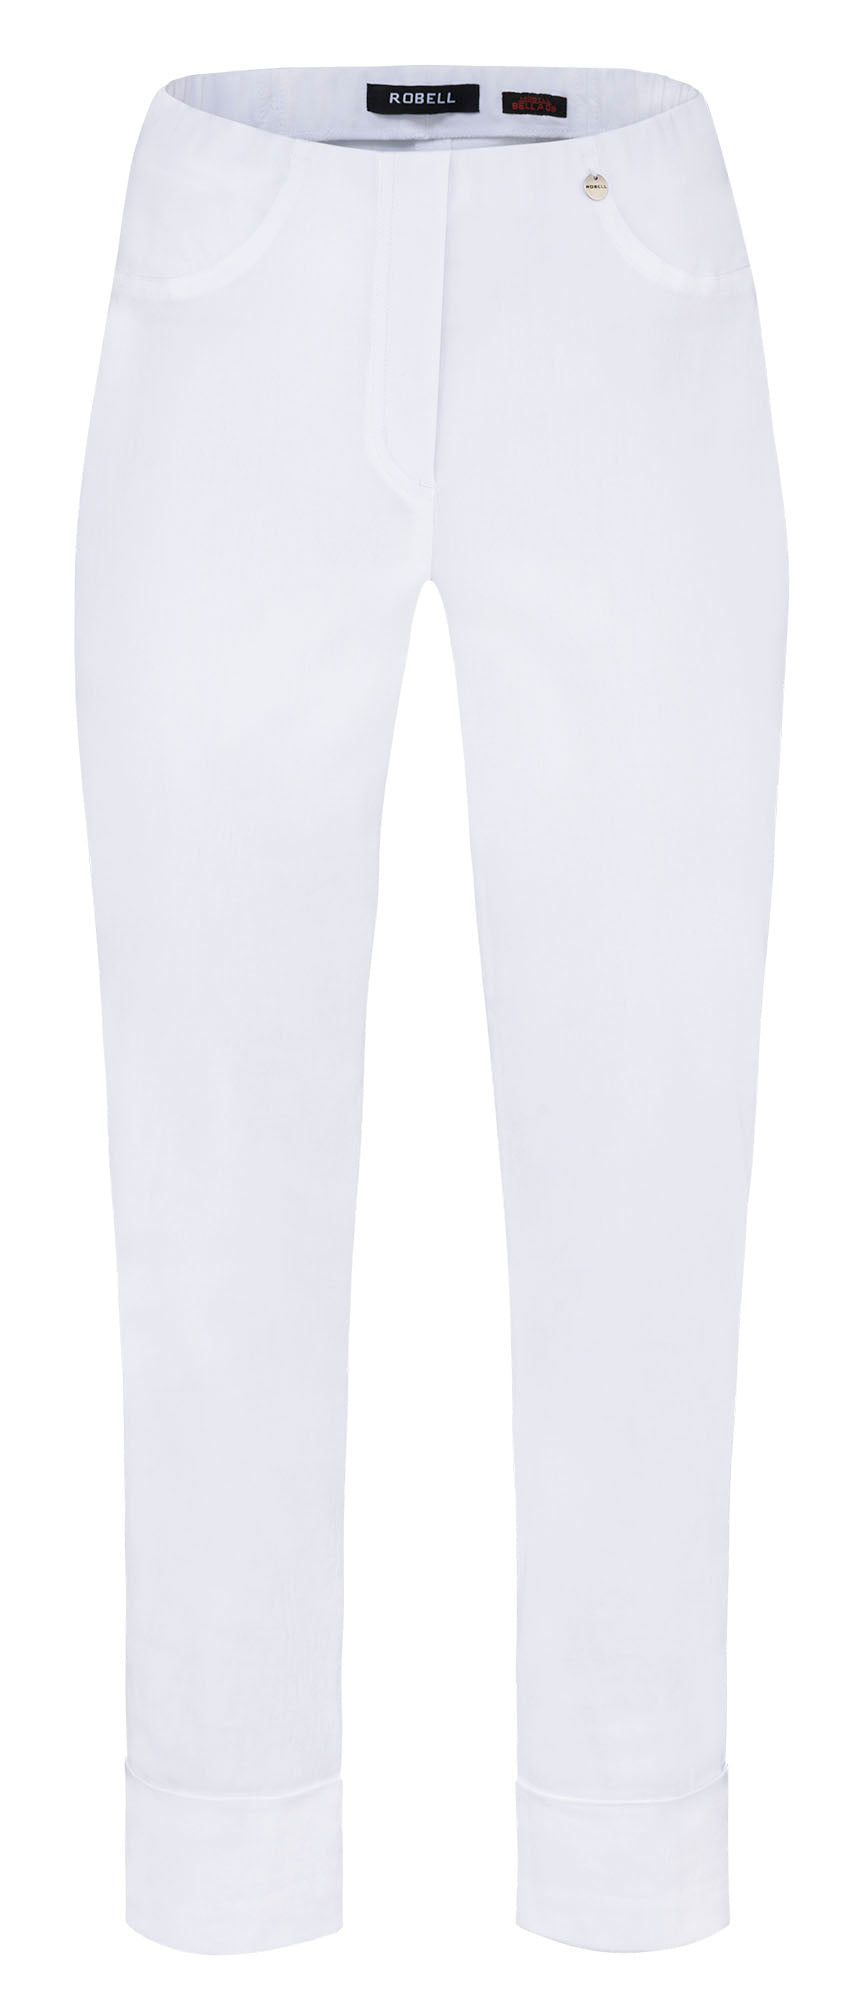 Robell White Cropped Trousers 51568